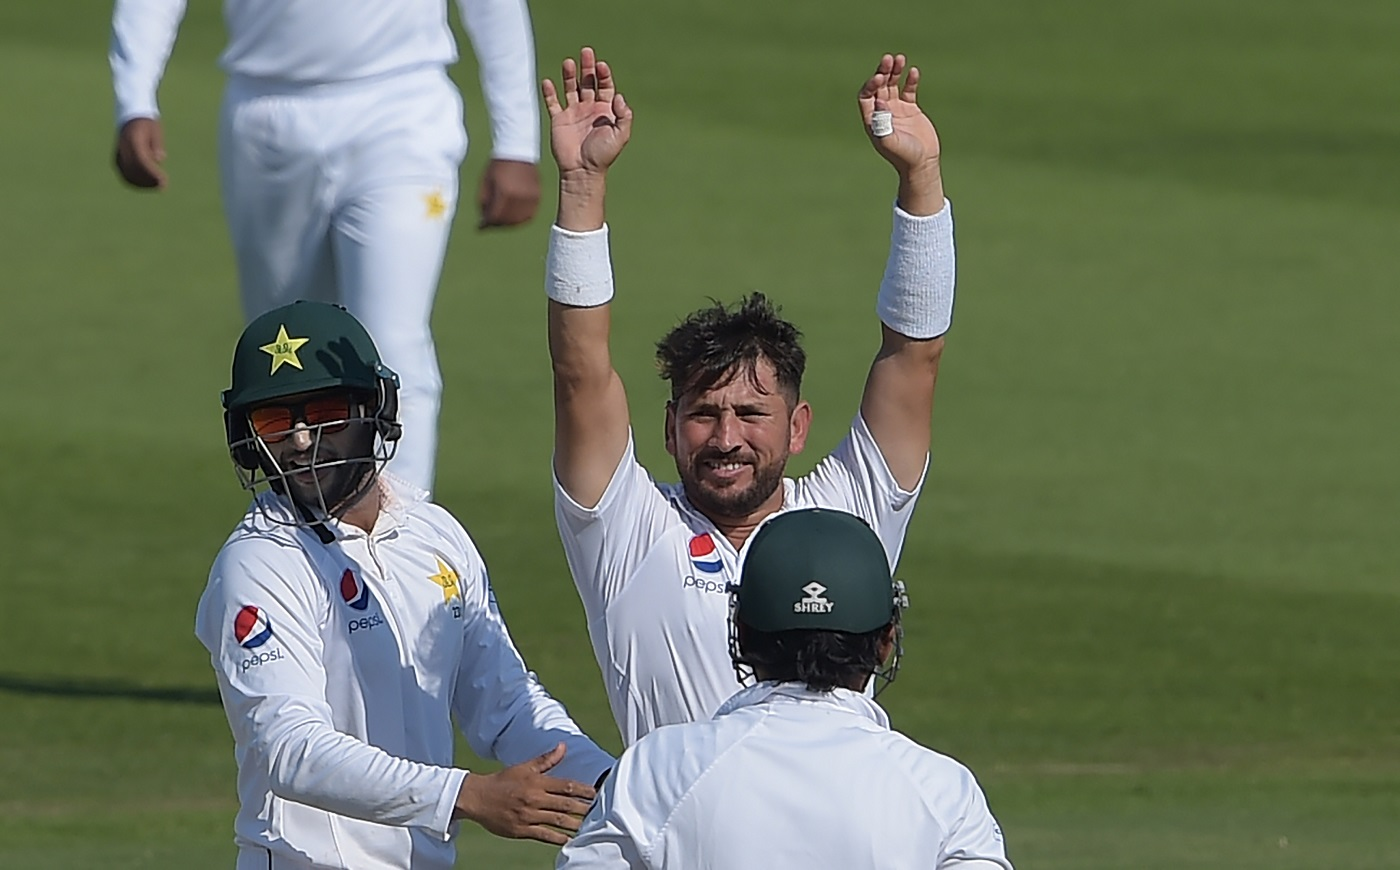 Watch: Yasir Shah Loses His Shoe While Running During Comical Run-Out 1